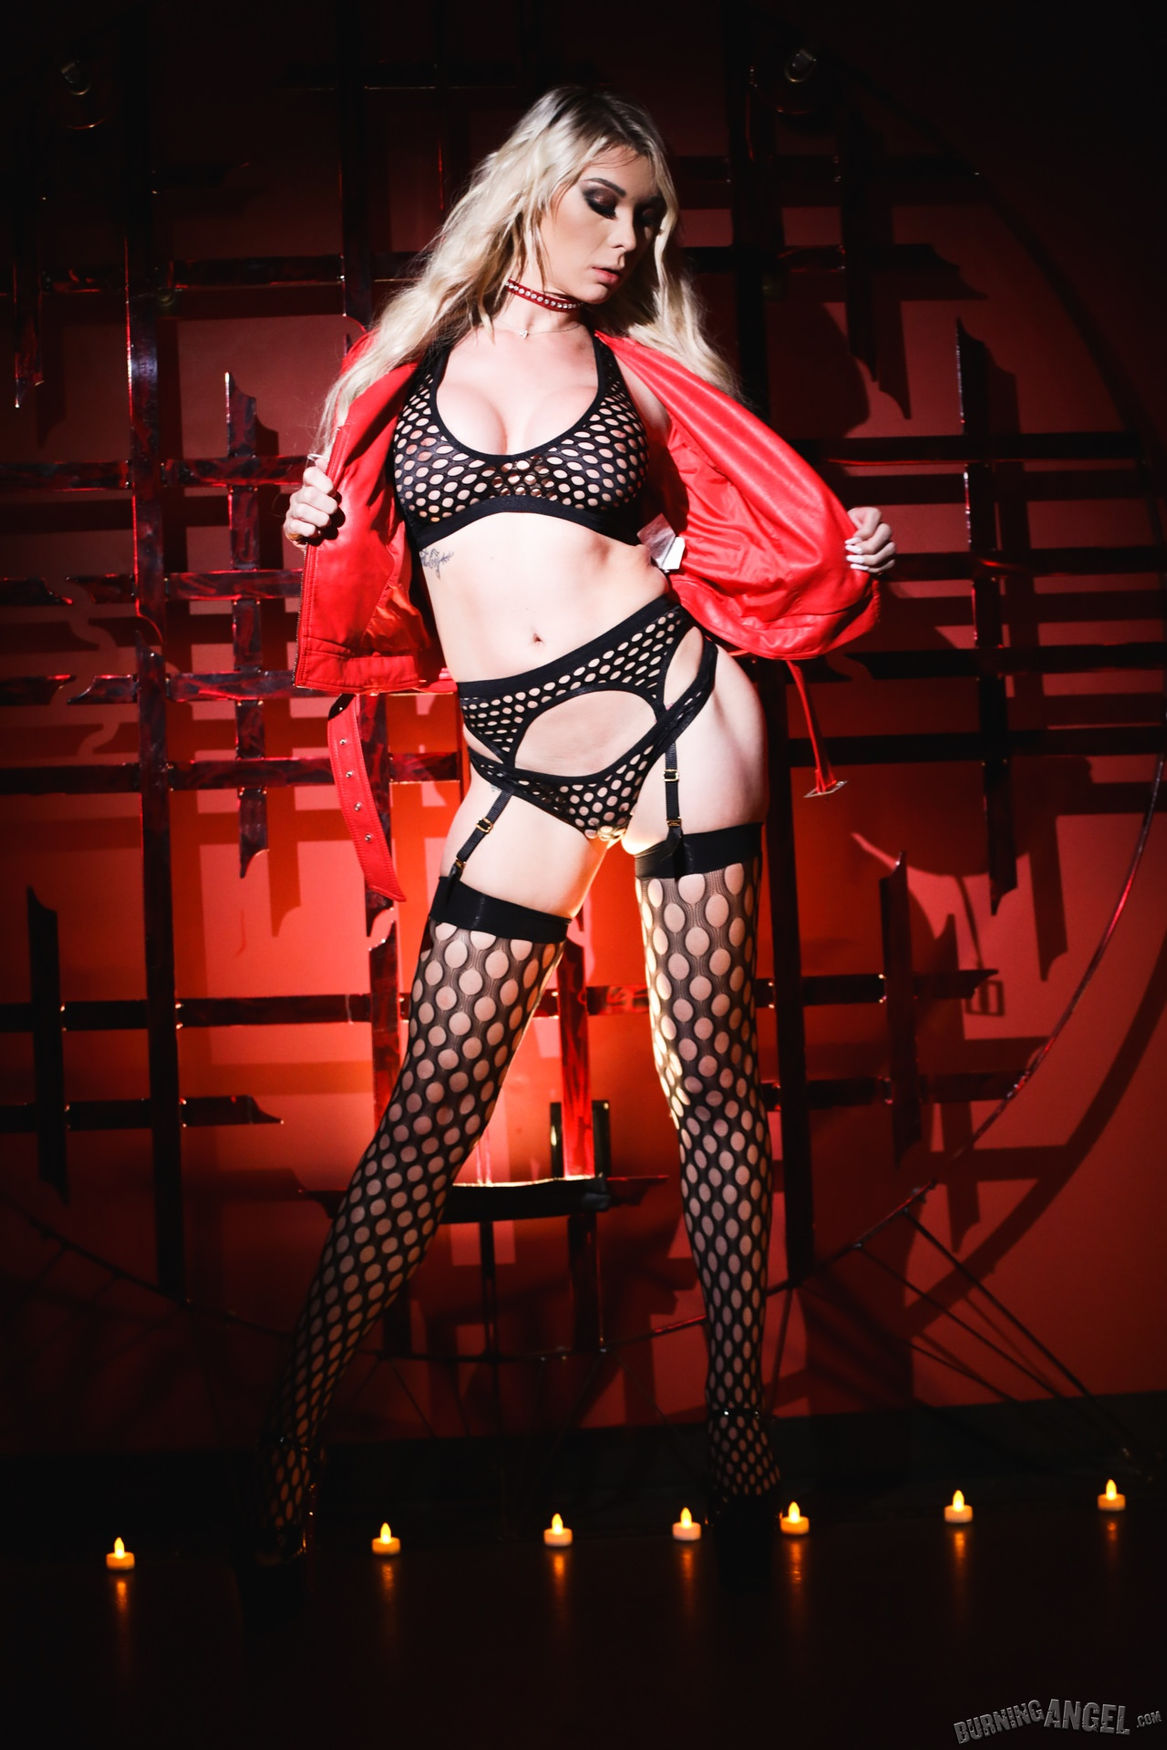 Alternative and goth Burning Angel pornstar Aubrey Kate in leather fishnet stockings and underwe ...